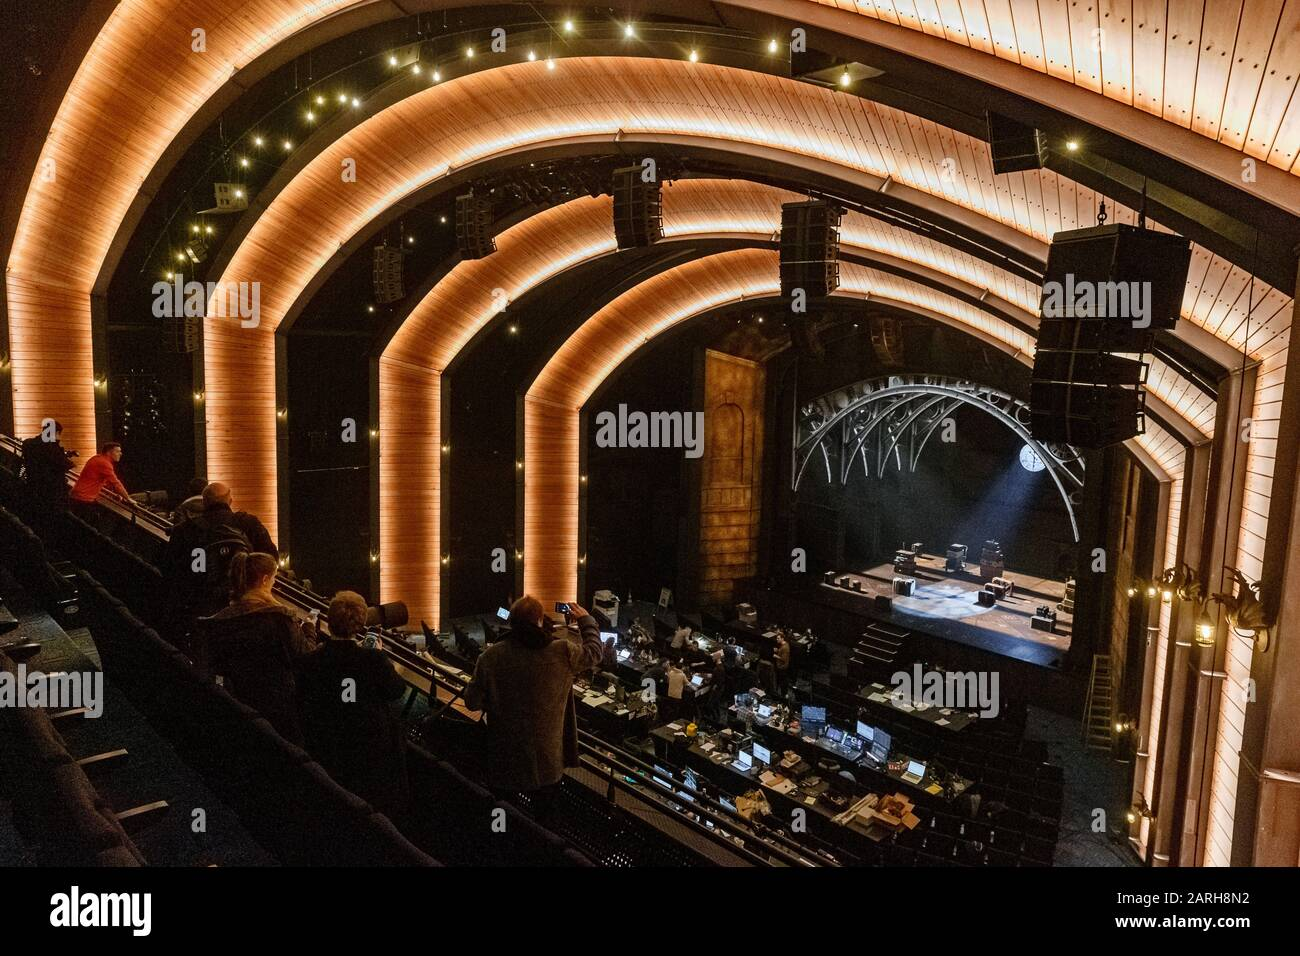 Hamburg Germany 28th Jan 2020 View From The Balcony Into The Auditorium Of The Mehr Theatre